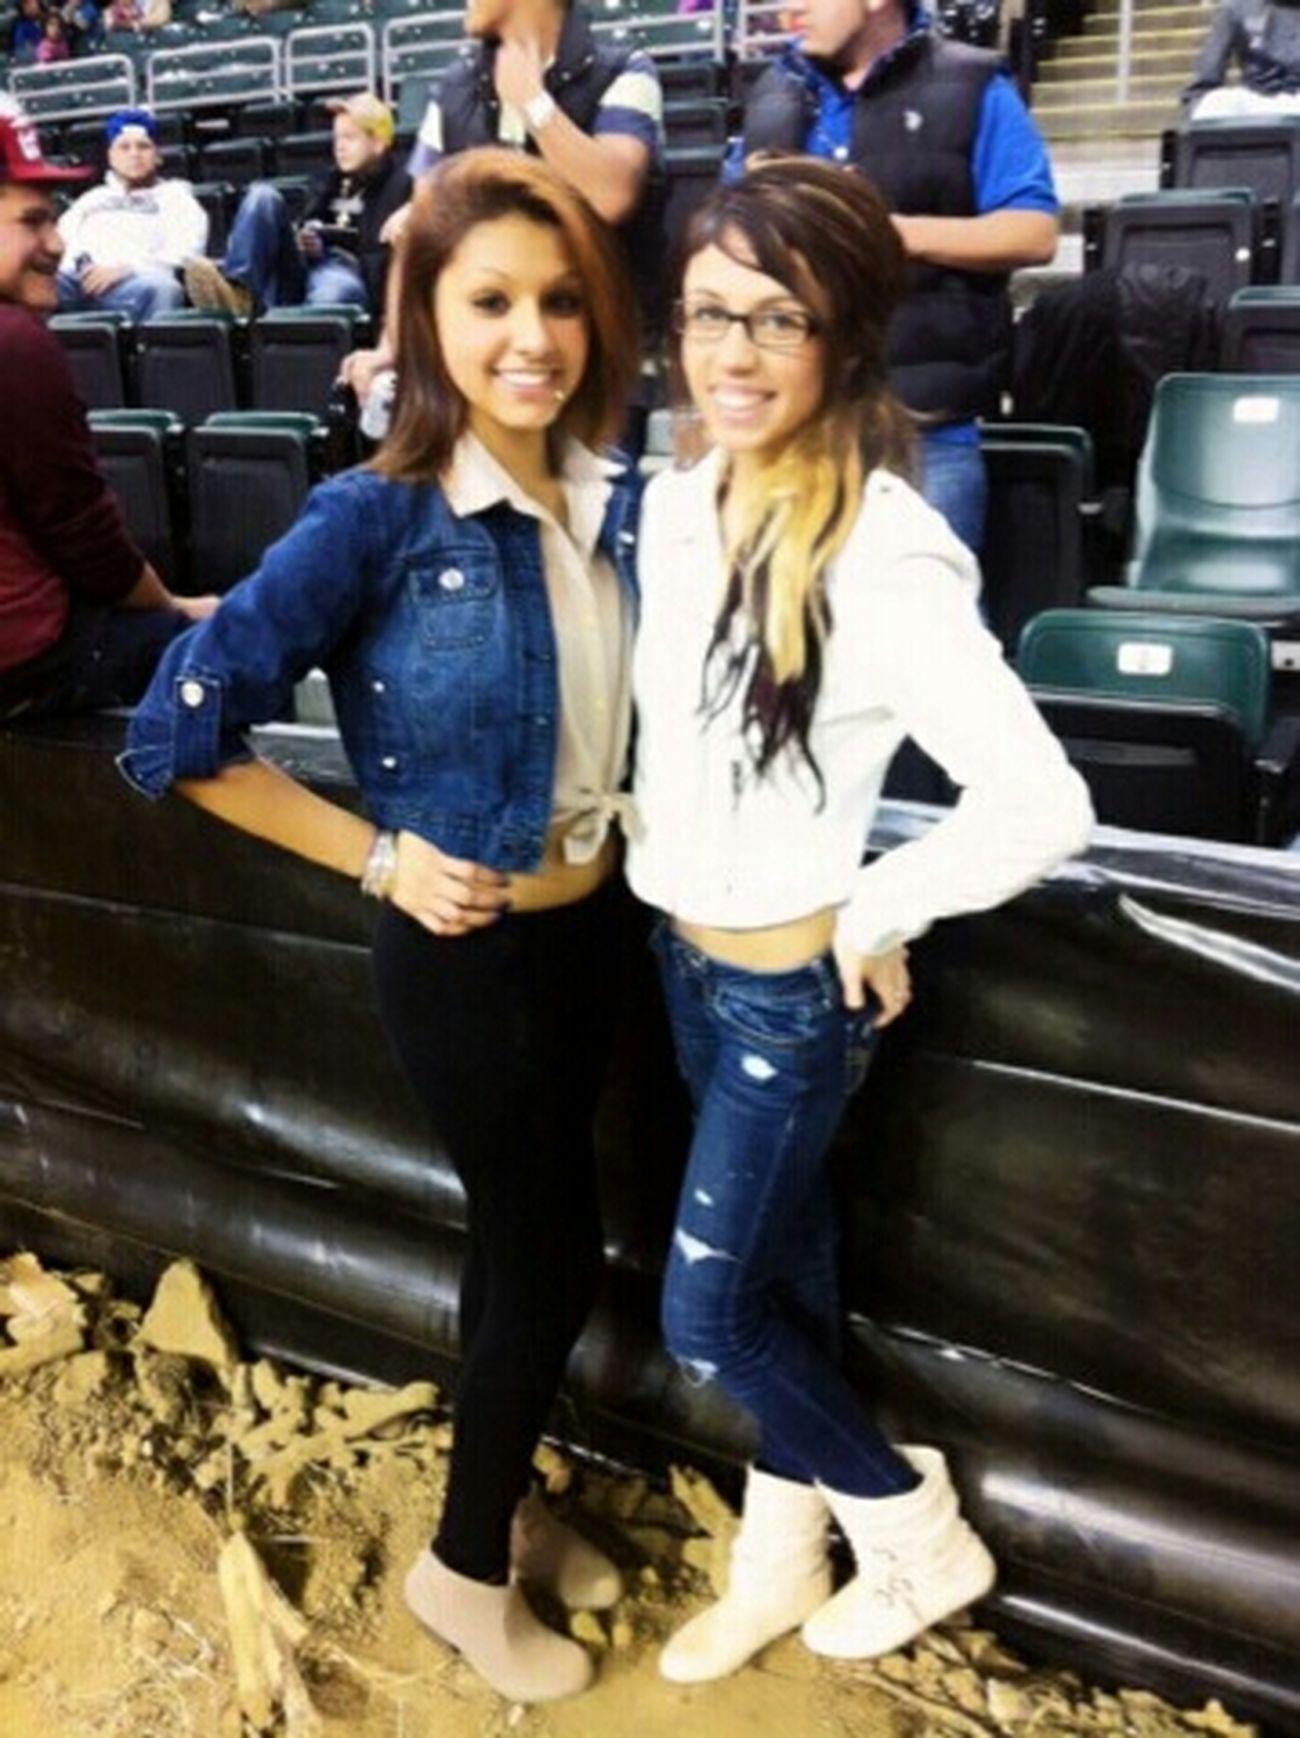 Me & My LOVE At The Rodeo/Jaripeo ♥ ❤